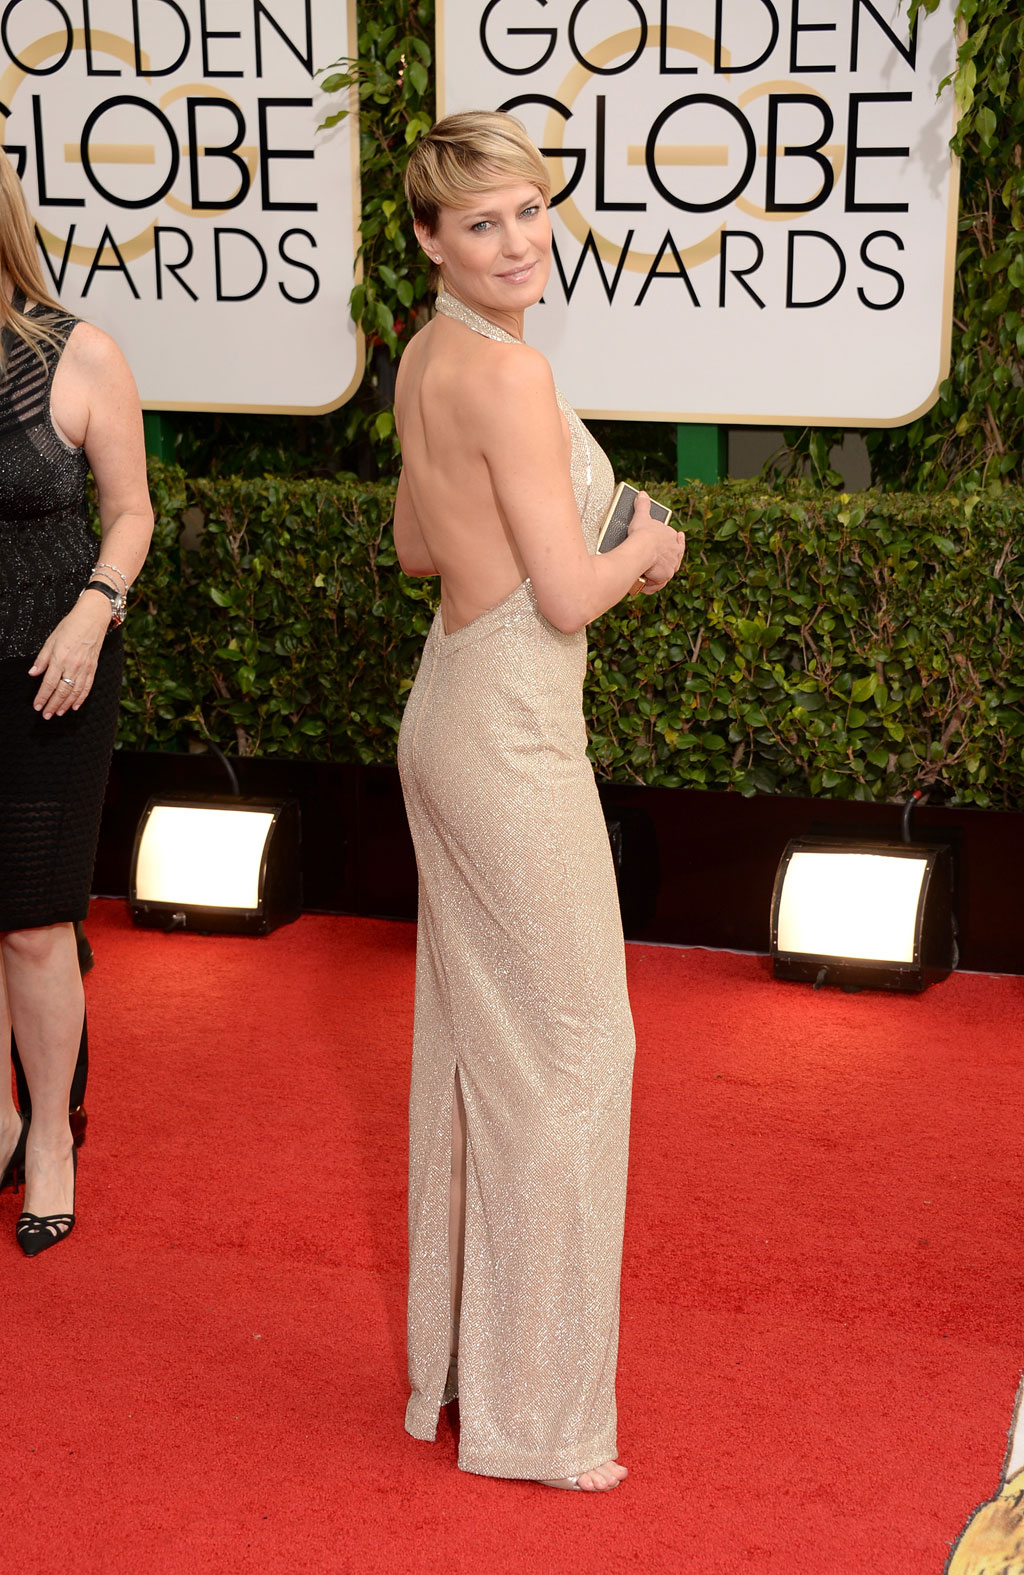 golden-globes-2014-robin-wright